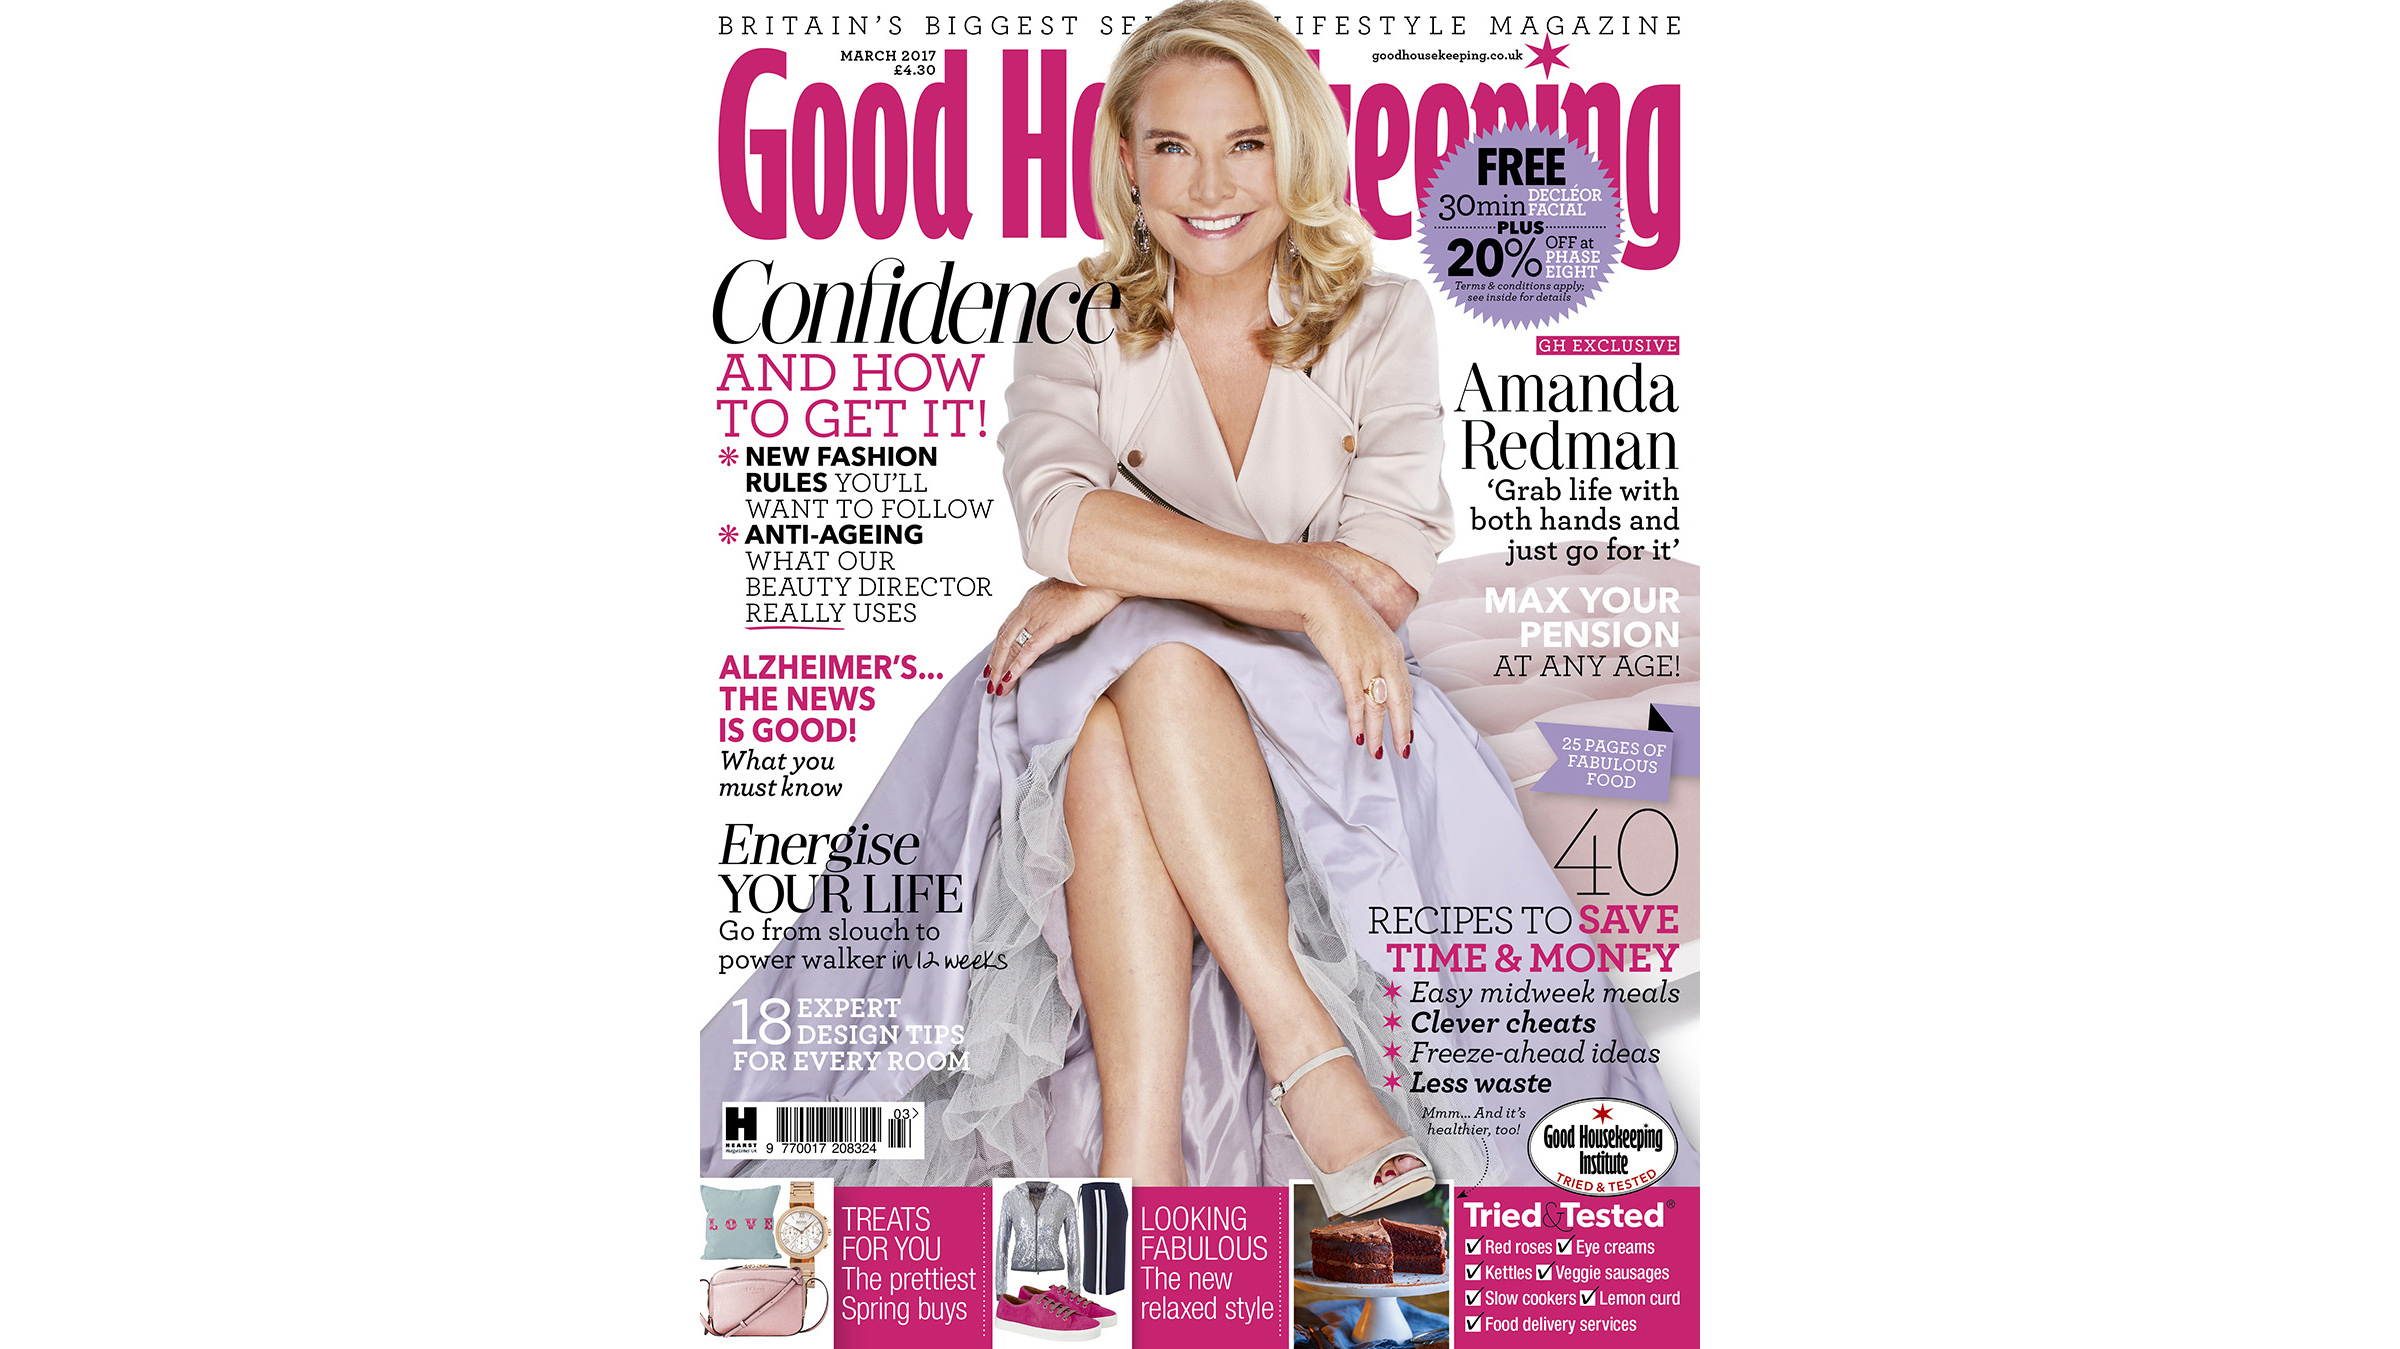 The cover of Good Housekeeping U.K.